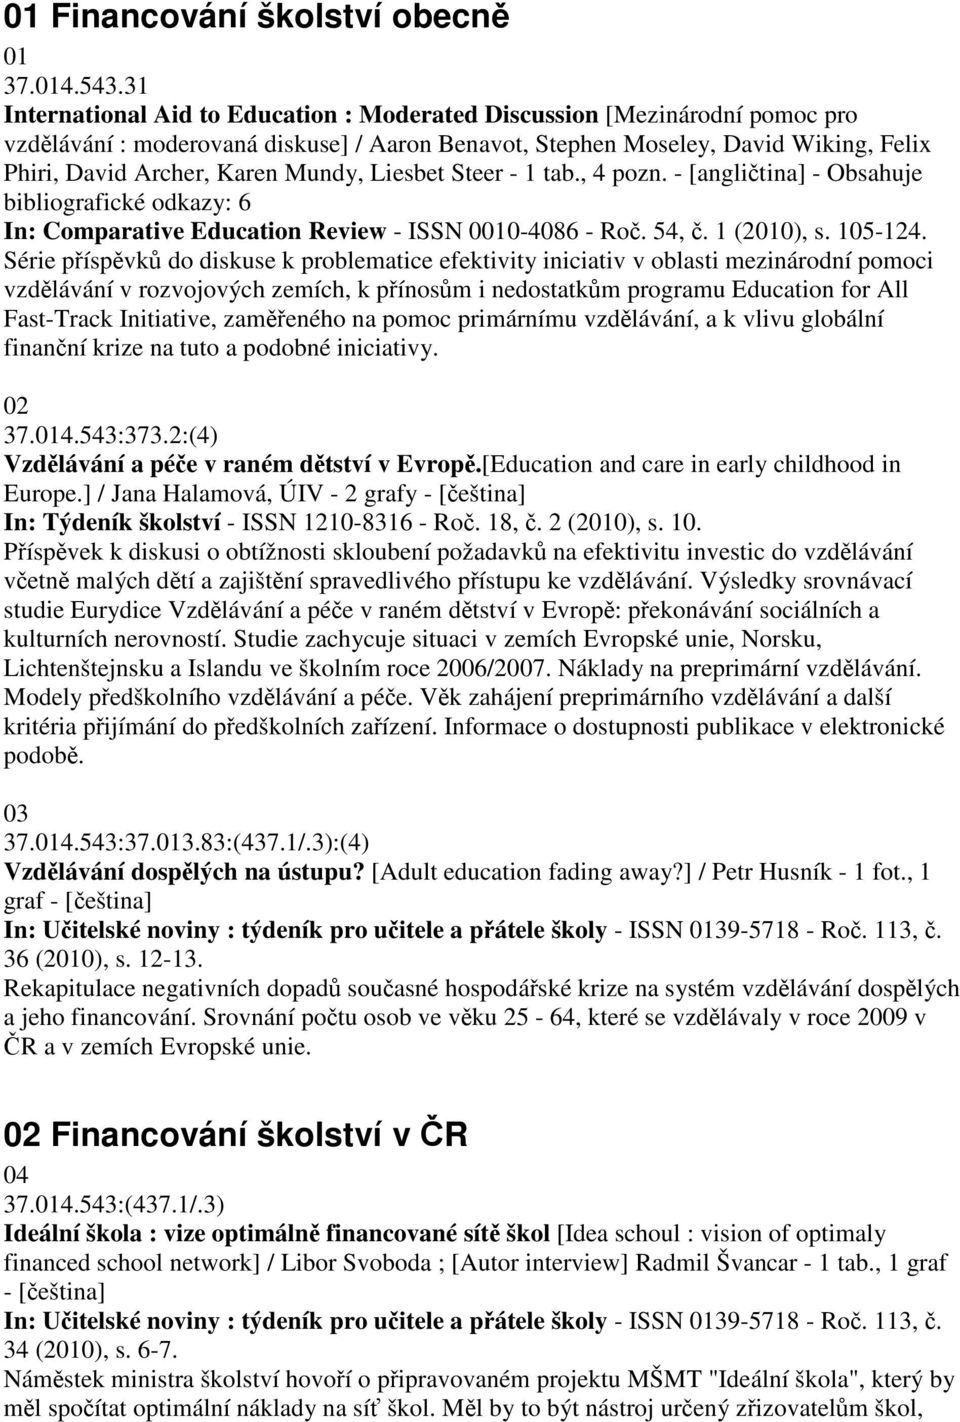 Liesbet Steer - 1 tab., 4 pozn. - [anglitina] - Obsahuje bibliografické odkazy: 6 In: Comparative Education Review - ISSN 0010-4086 - Ro. 54,. 1 (2010), s. 105-124.